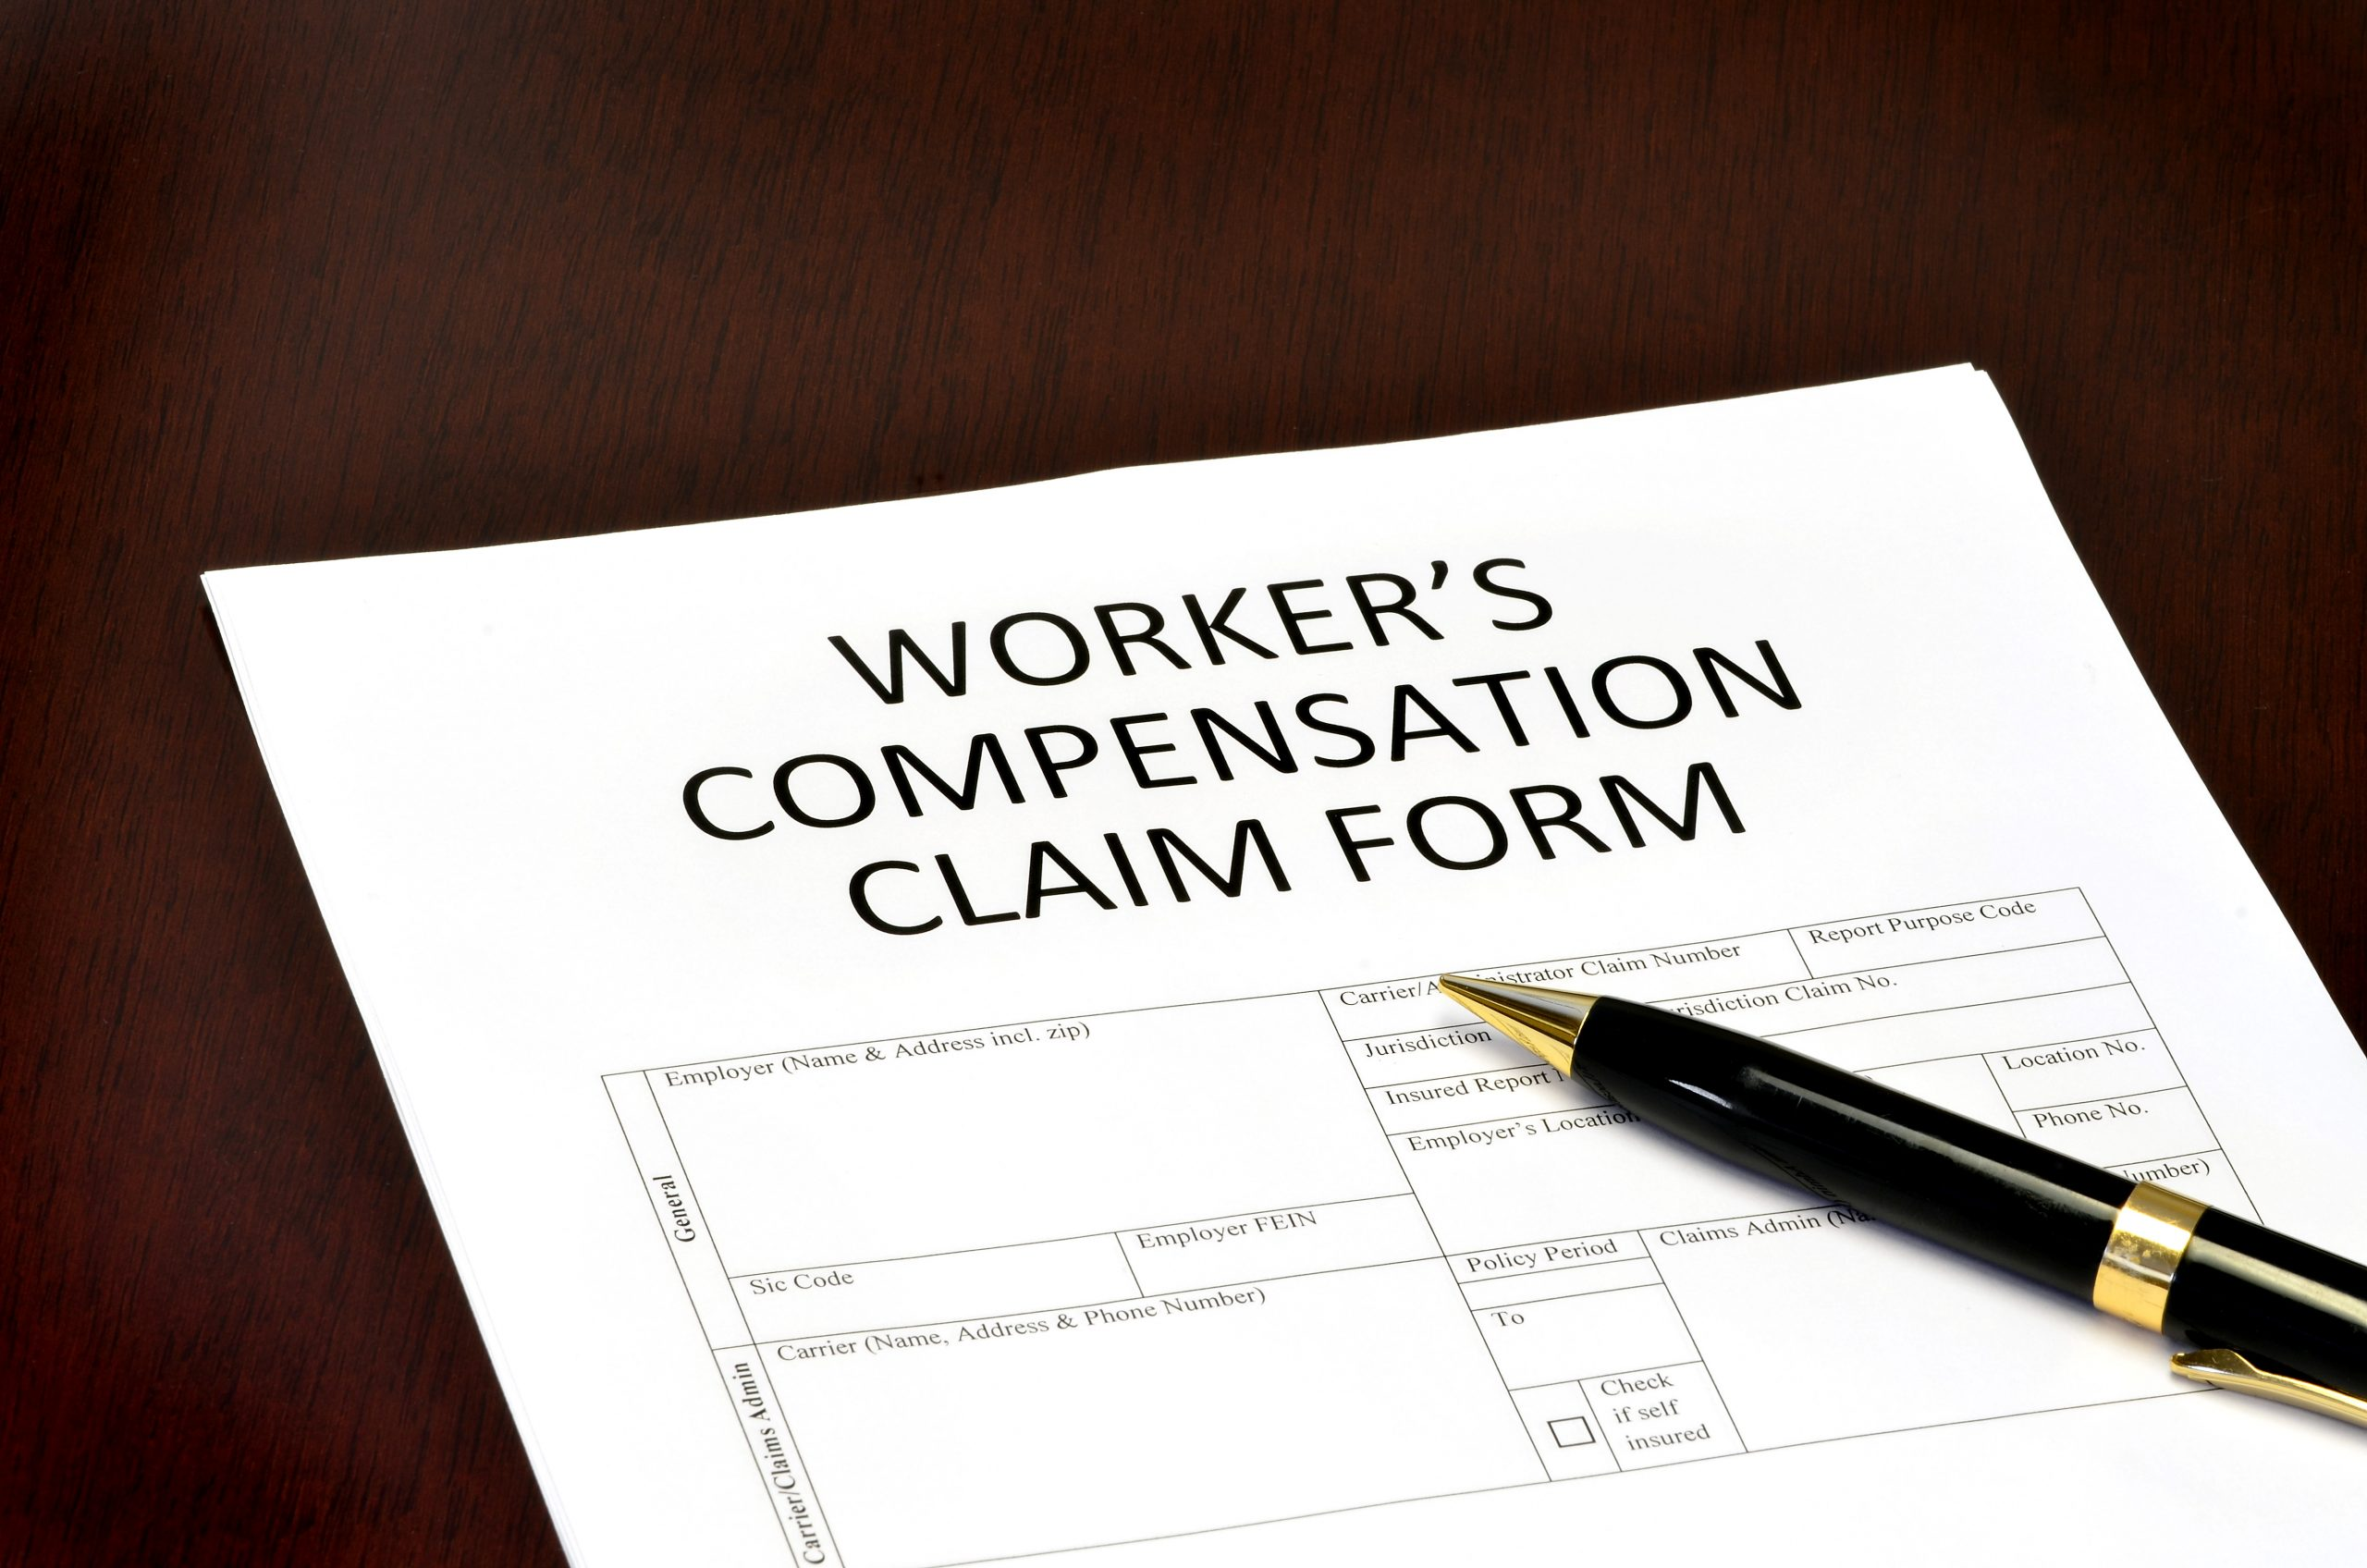 August 19 – Workers Compensation